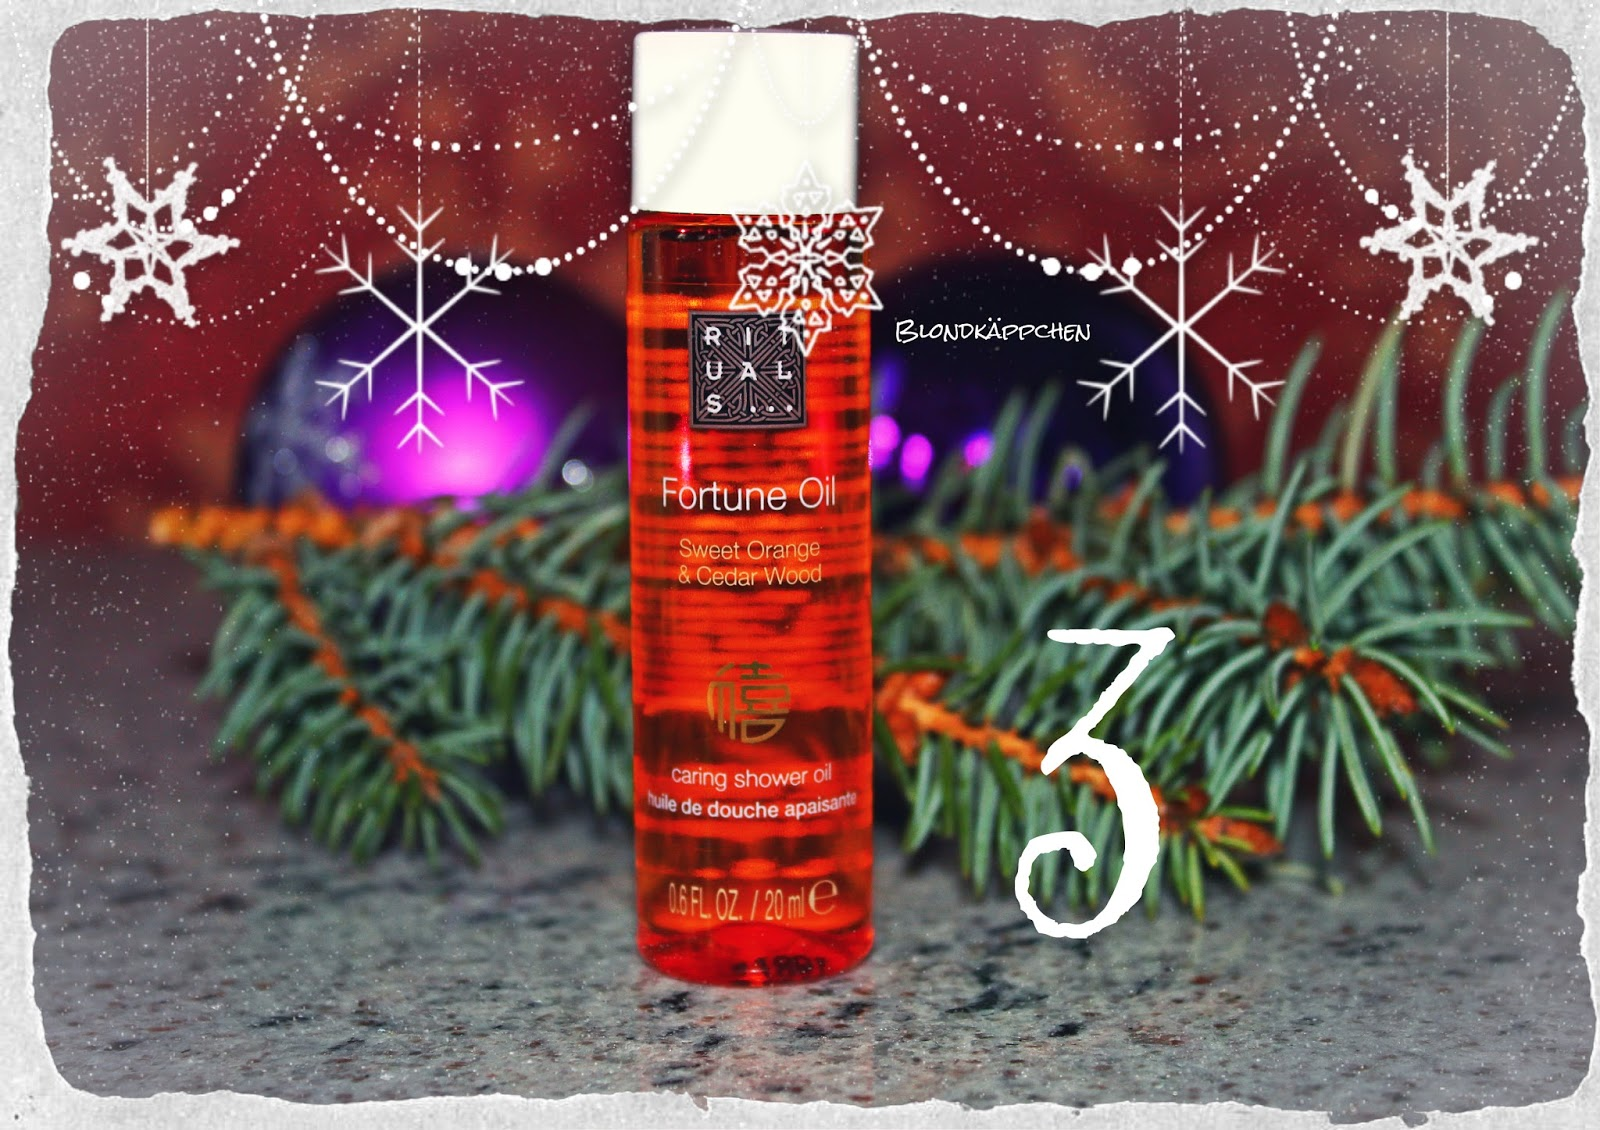 Adventskalender Rituals Blondkäppchen Rituals Adventskalender 2016 Review